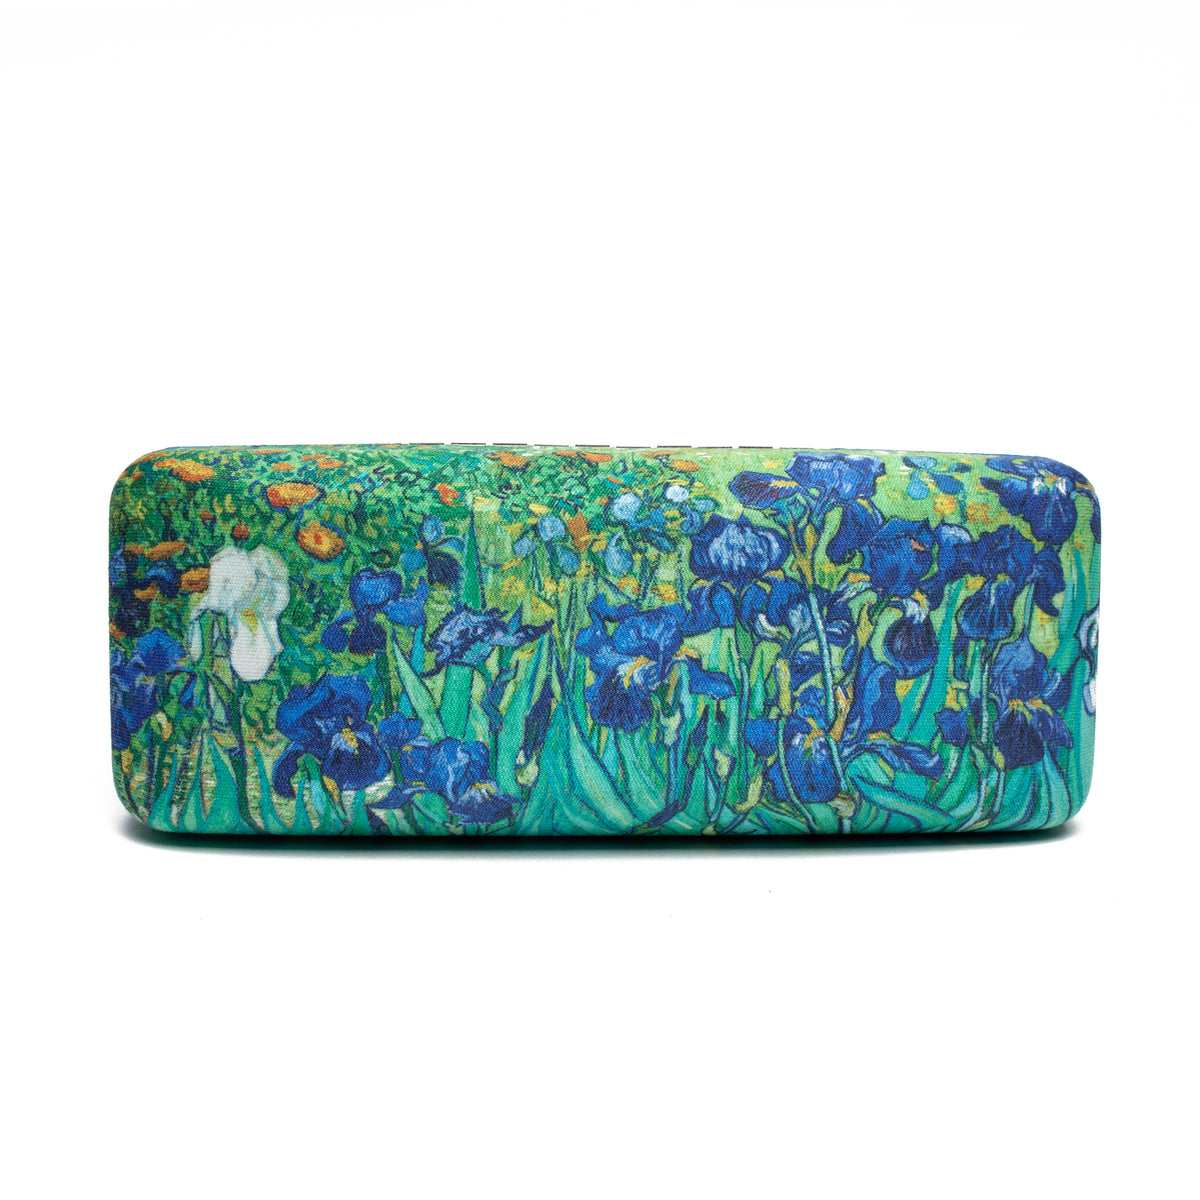 Irises Eyeglass Case & Lens Cloth